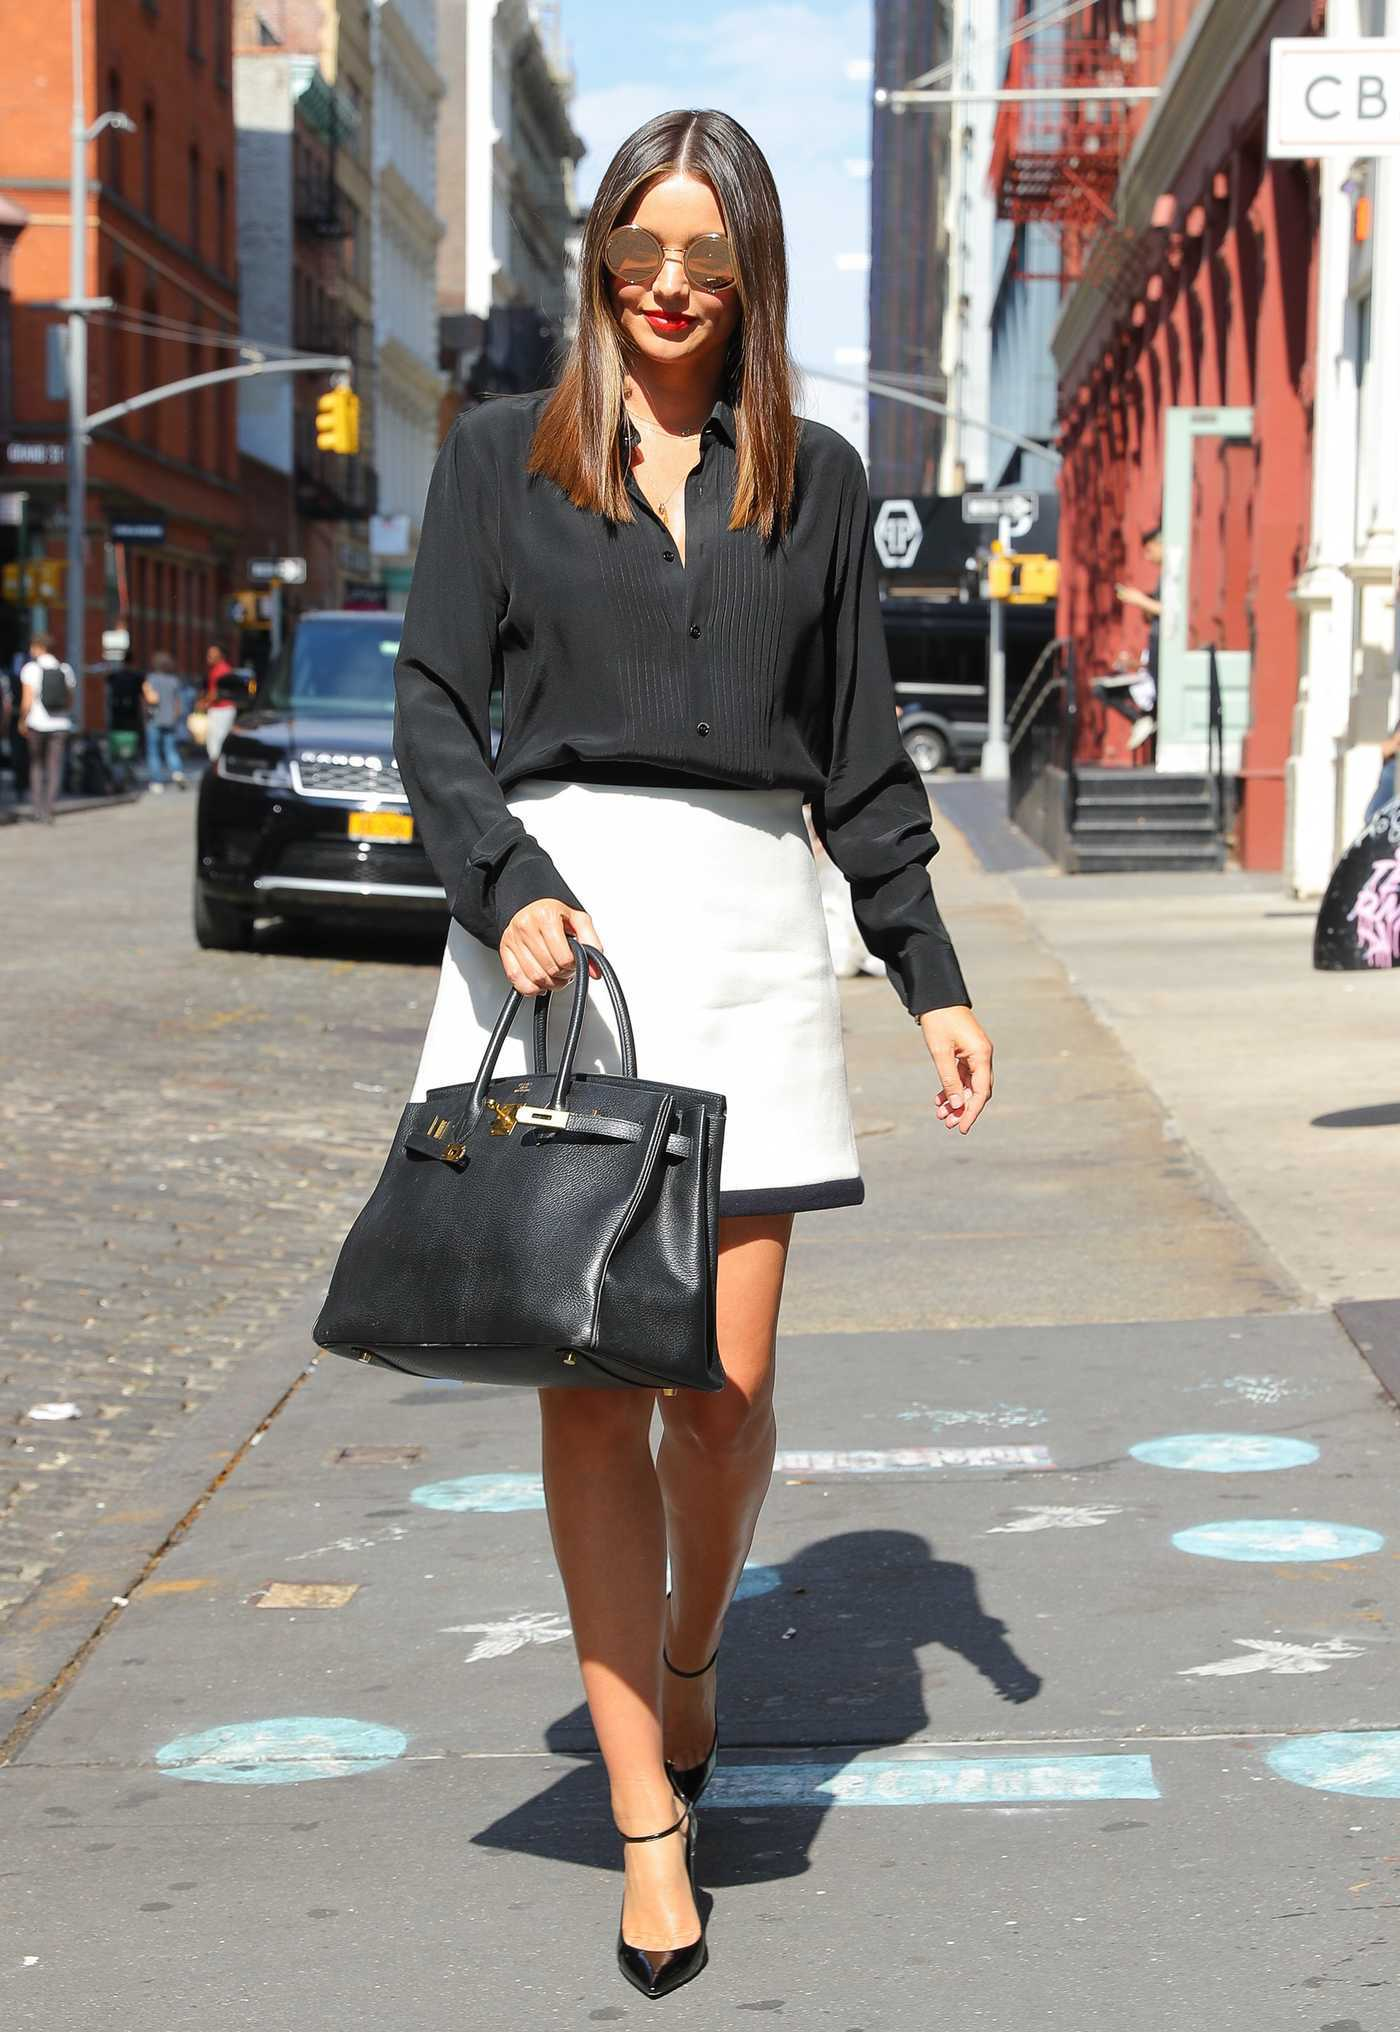 Miranda Kerr in a Short White Skirt Was Seen Out in New York 09/20/2018